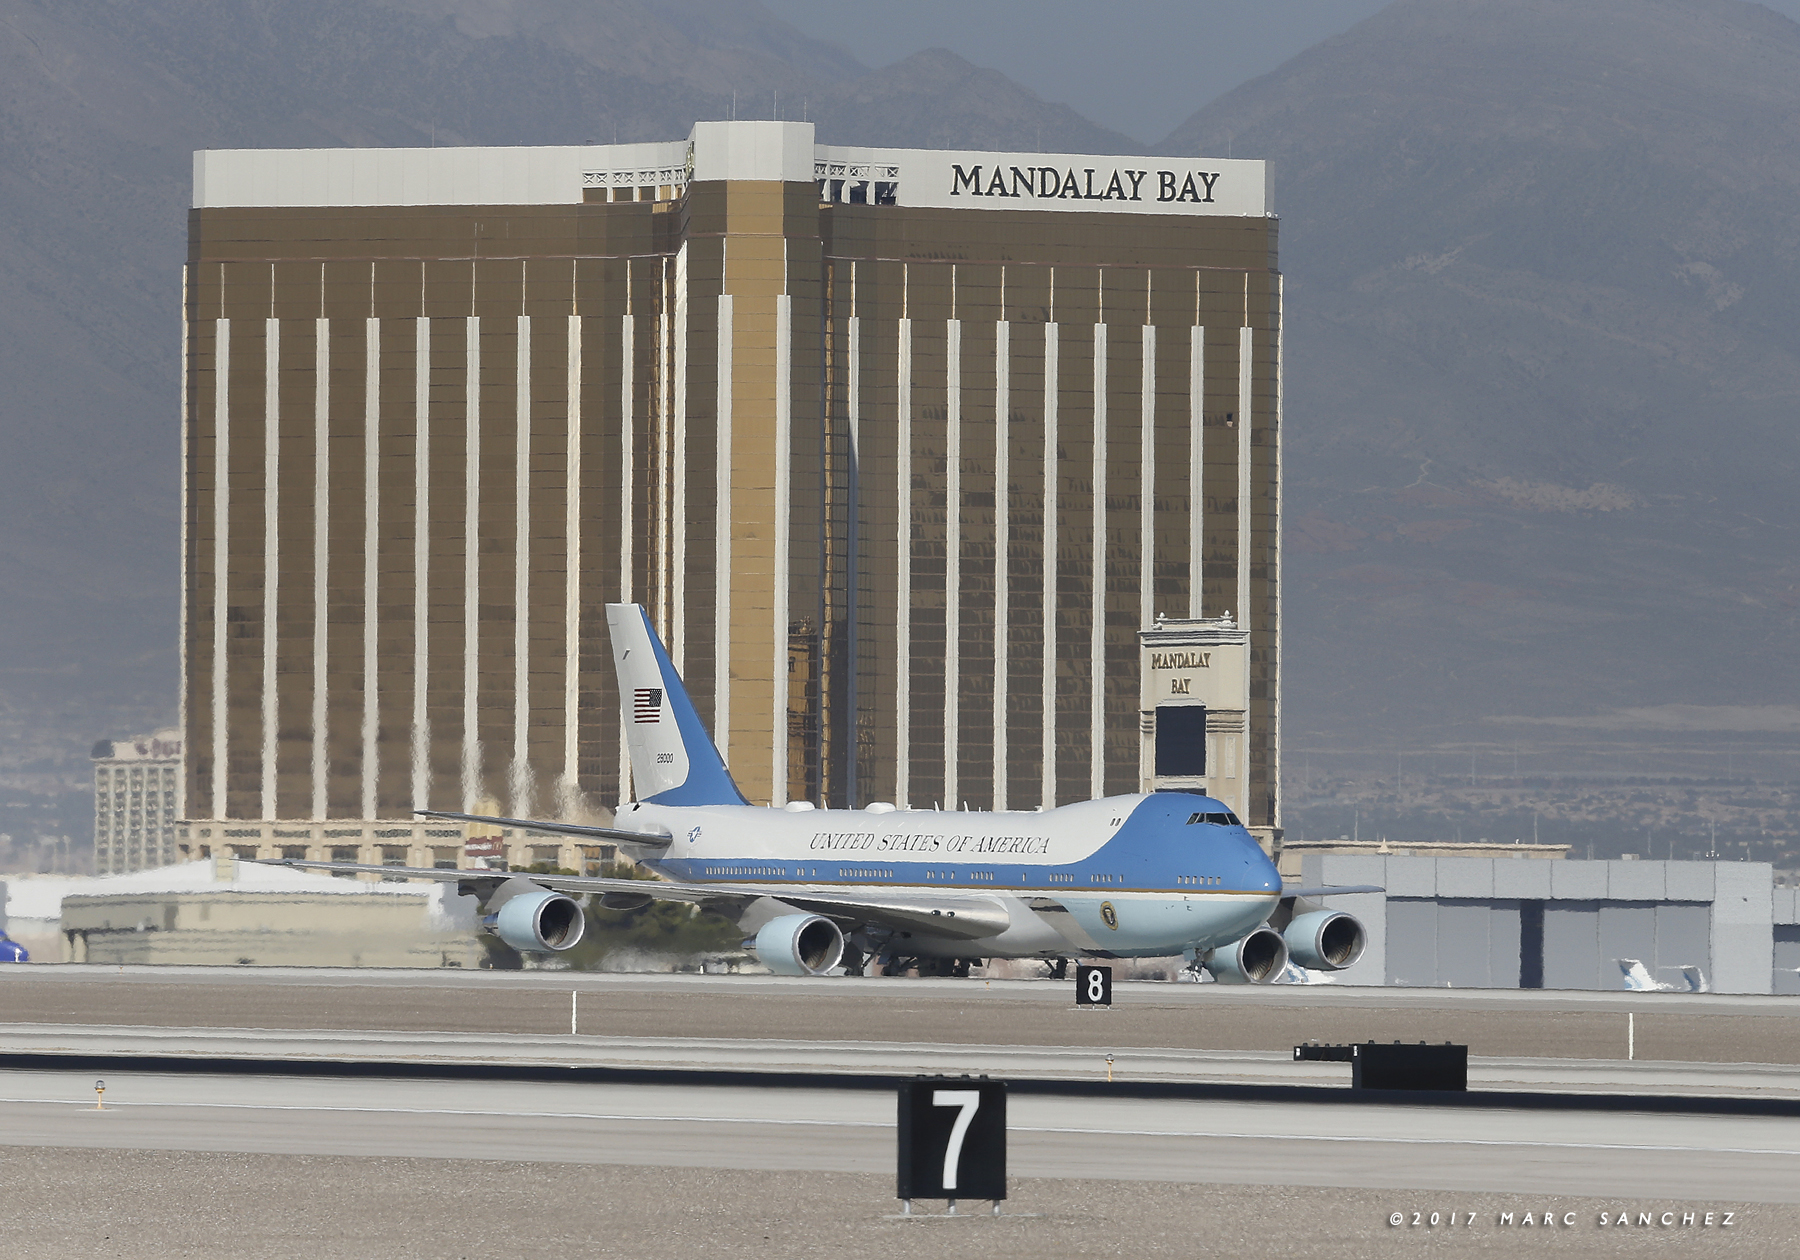 Image of Air Force One with US President Donald Trump and First Lady Melania Trump arrive at McCarran International Airport in Las Vegas on October 4, 2017, with the broken window of the 32nd floor of the Mandalay Bay resort in the background. President Donald Trump arrived in Las Vegas, where he will meet survivors of the most deadly mass shooting in modern US history.